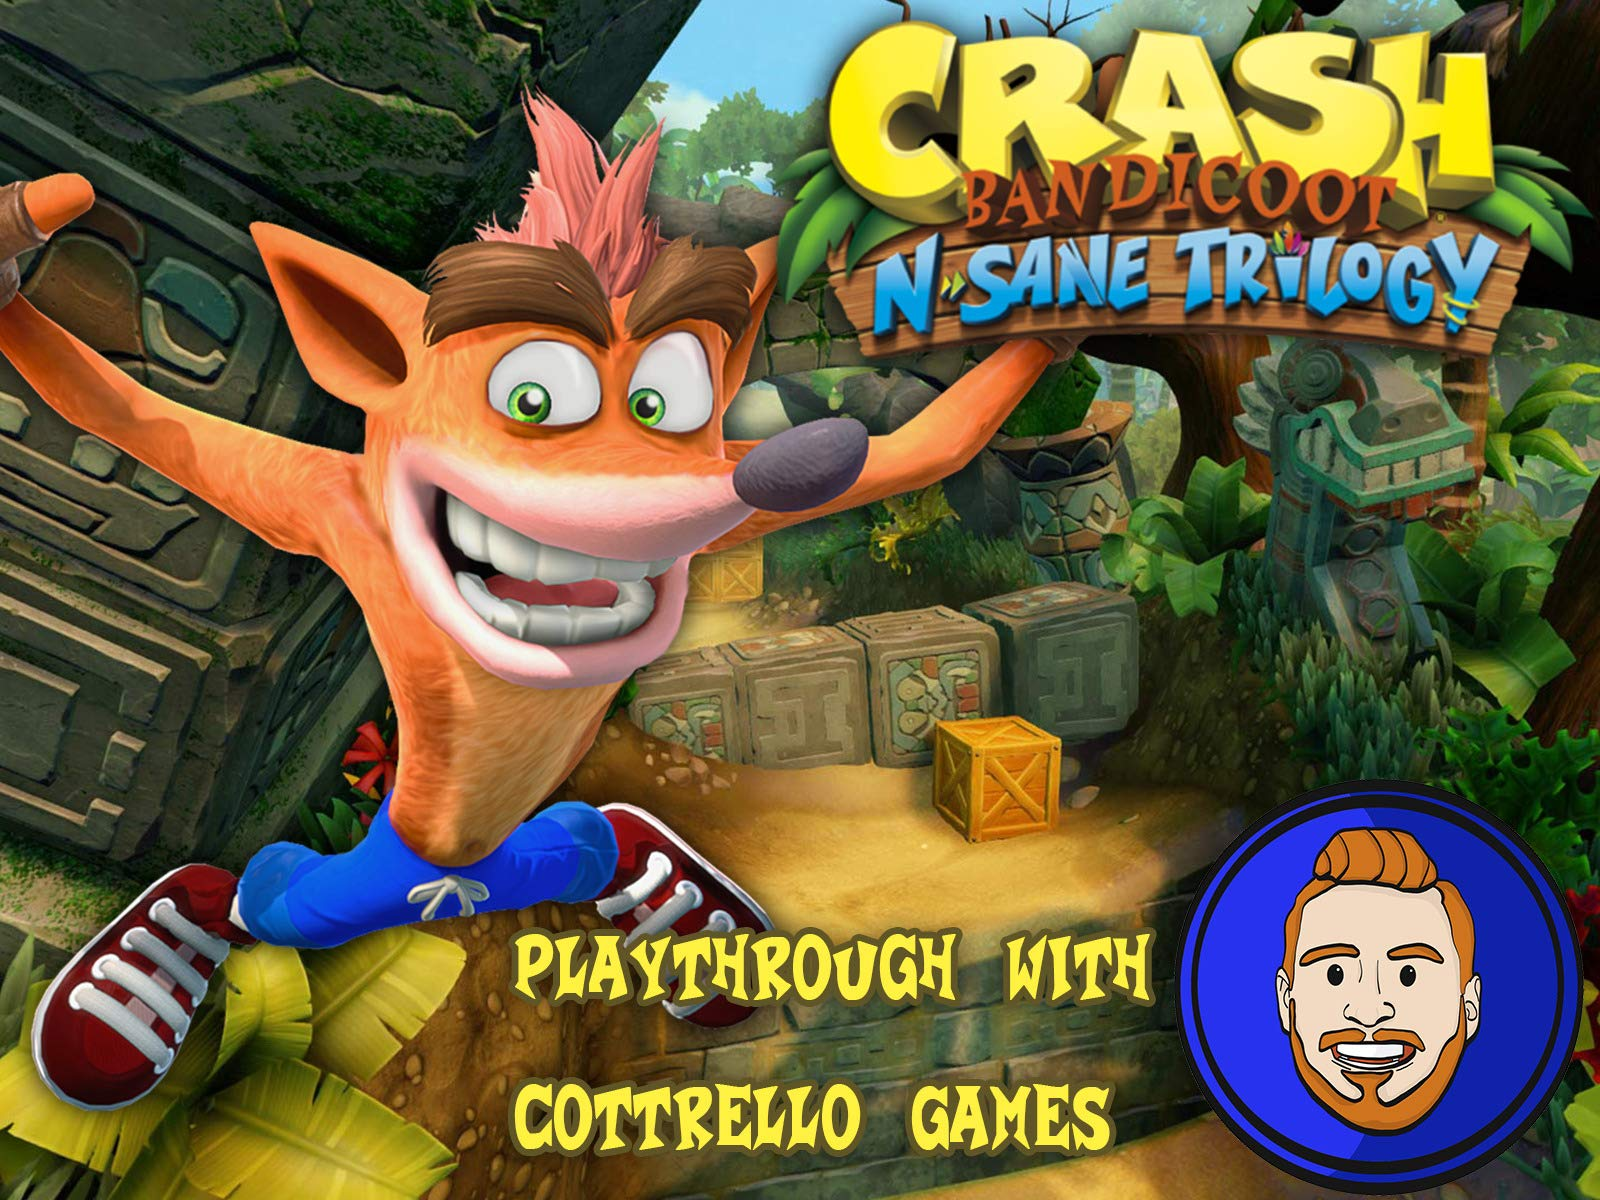 Crash Bandicoot N. Sane Trilogy Playthrough with Cottrello Games